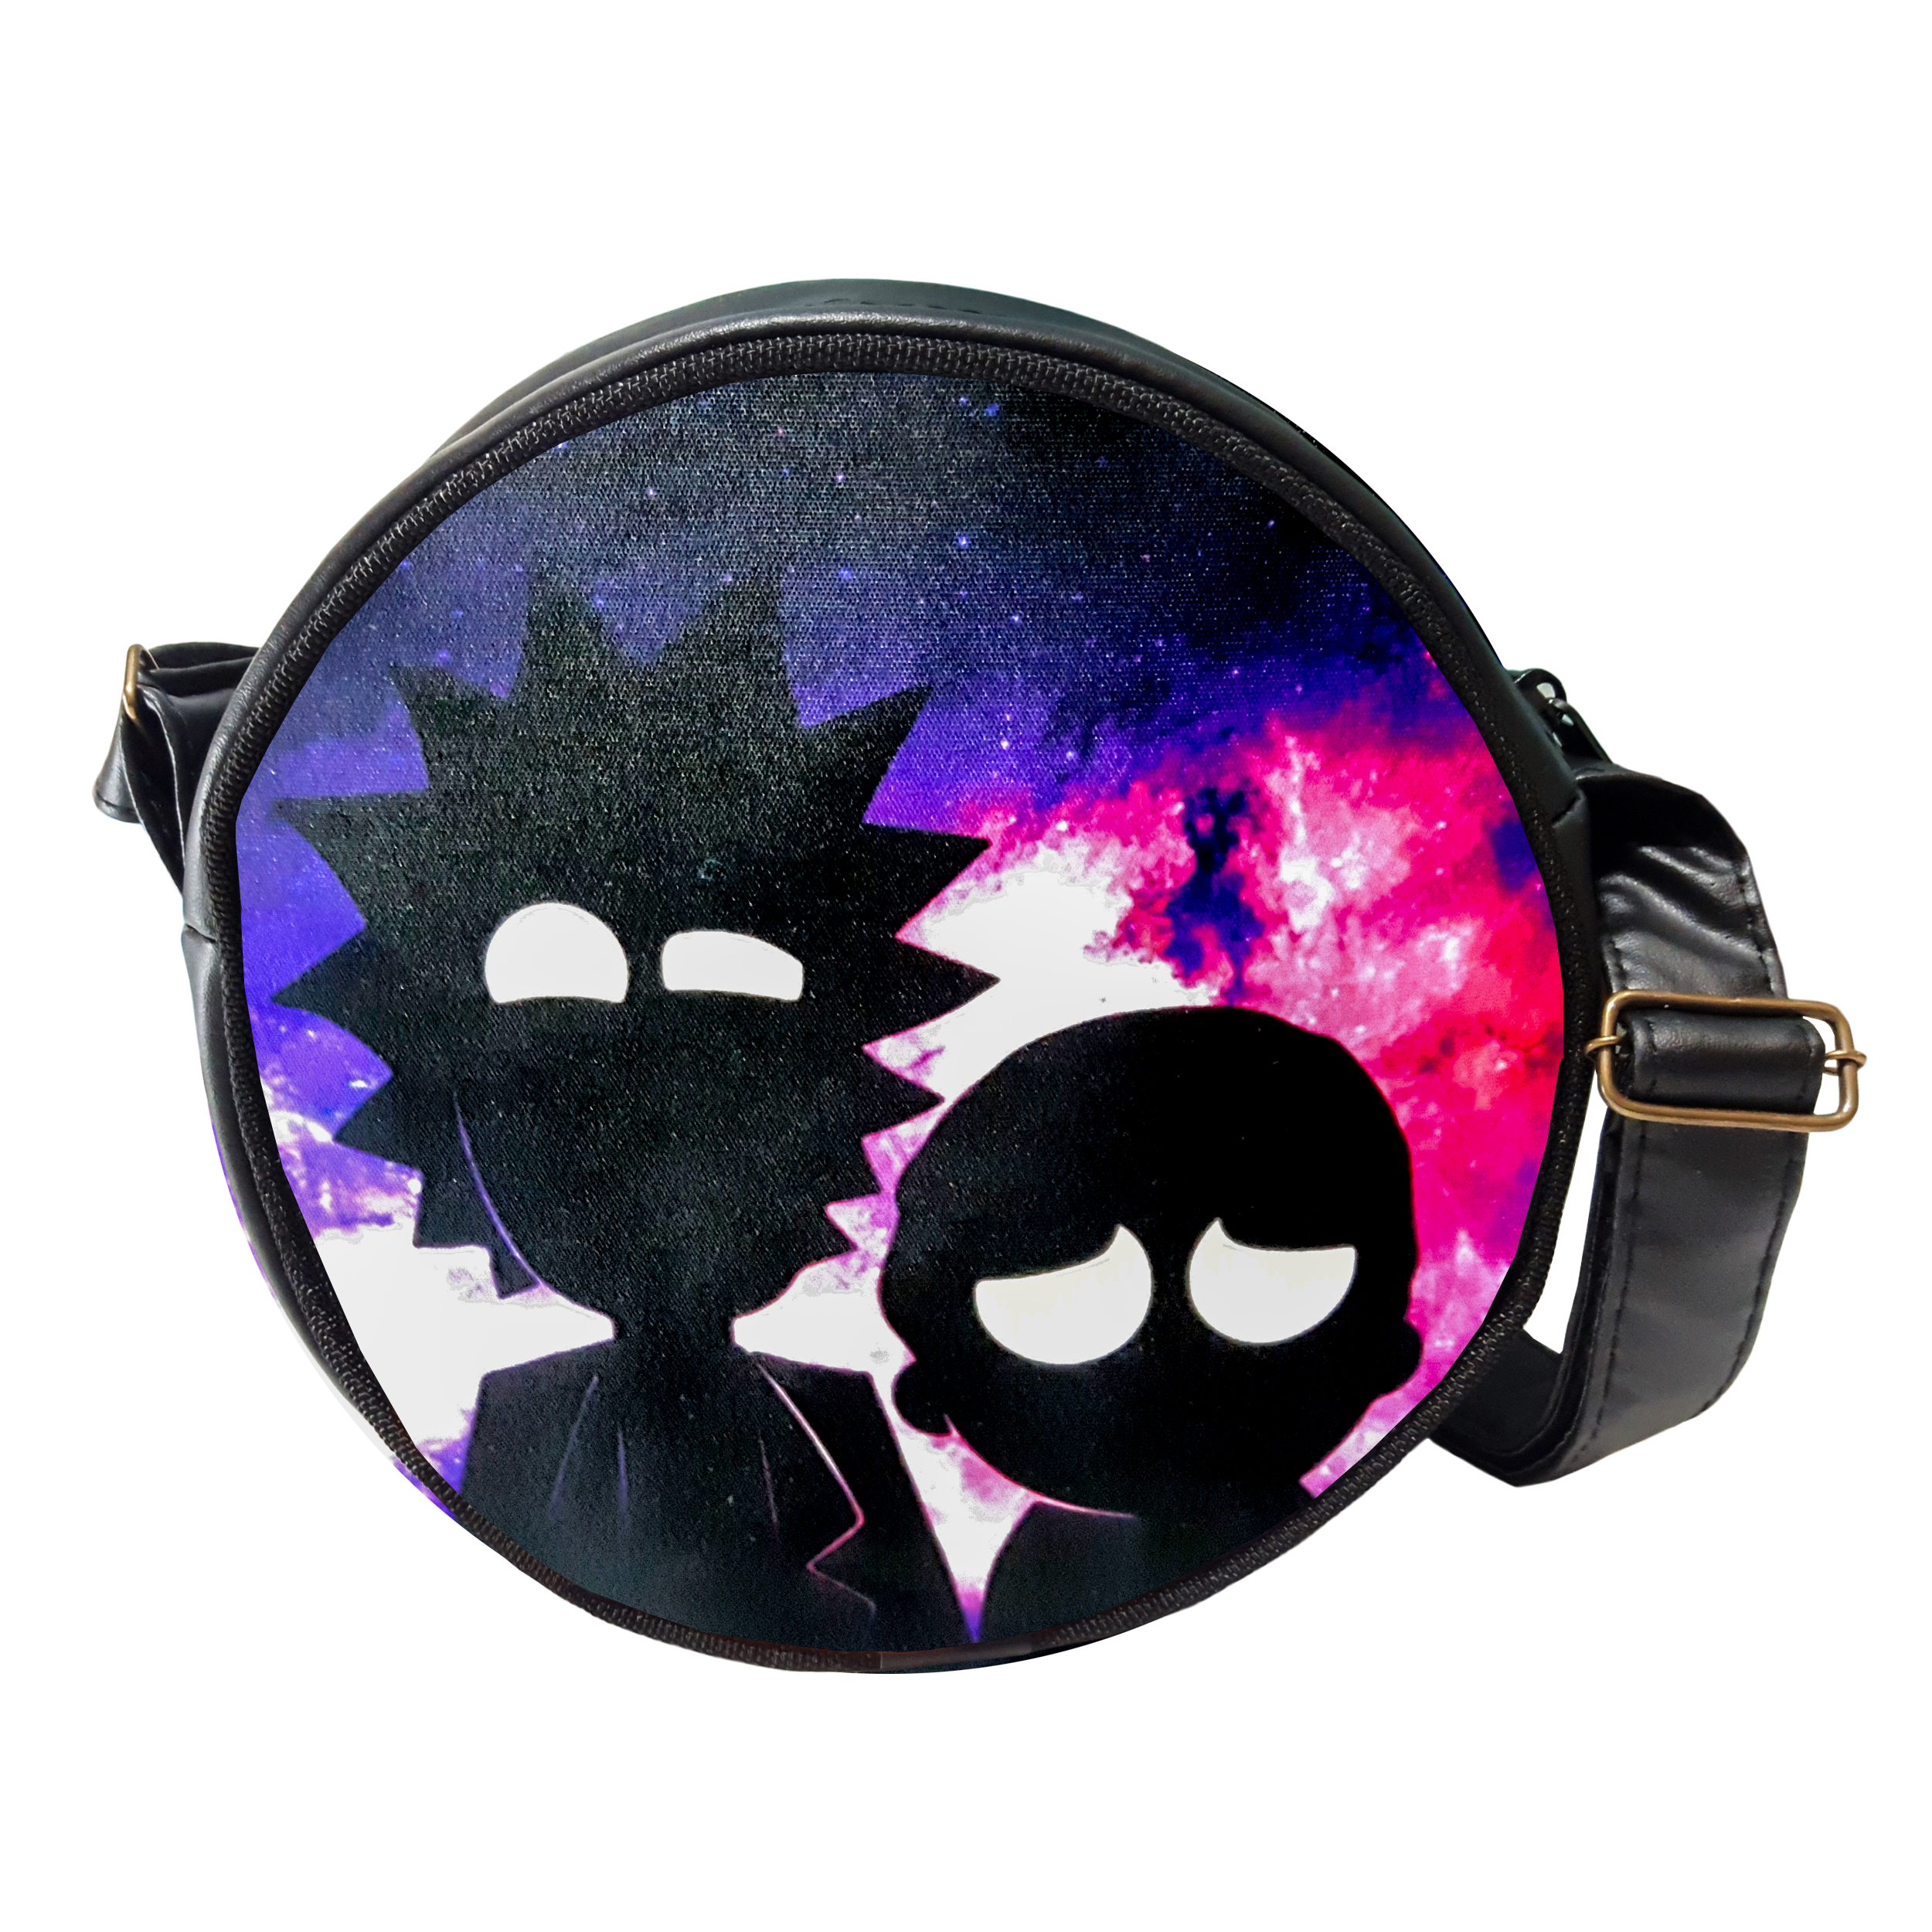 کیف دوشی طرح Rick and Morty کد KDG-01